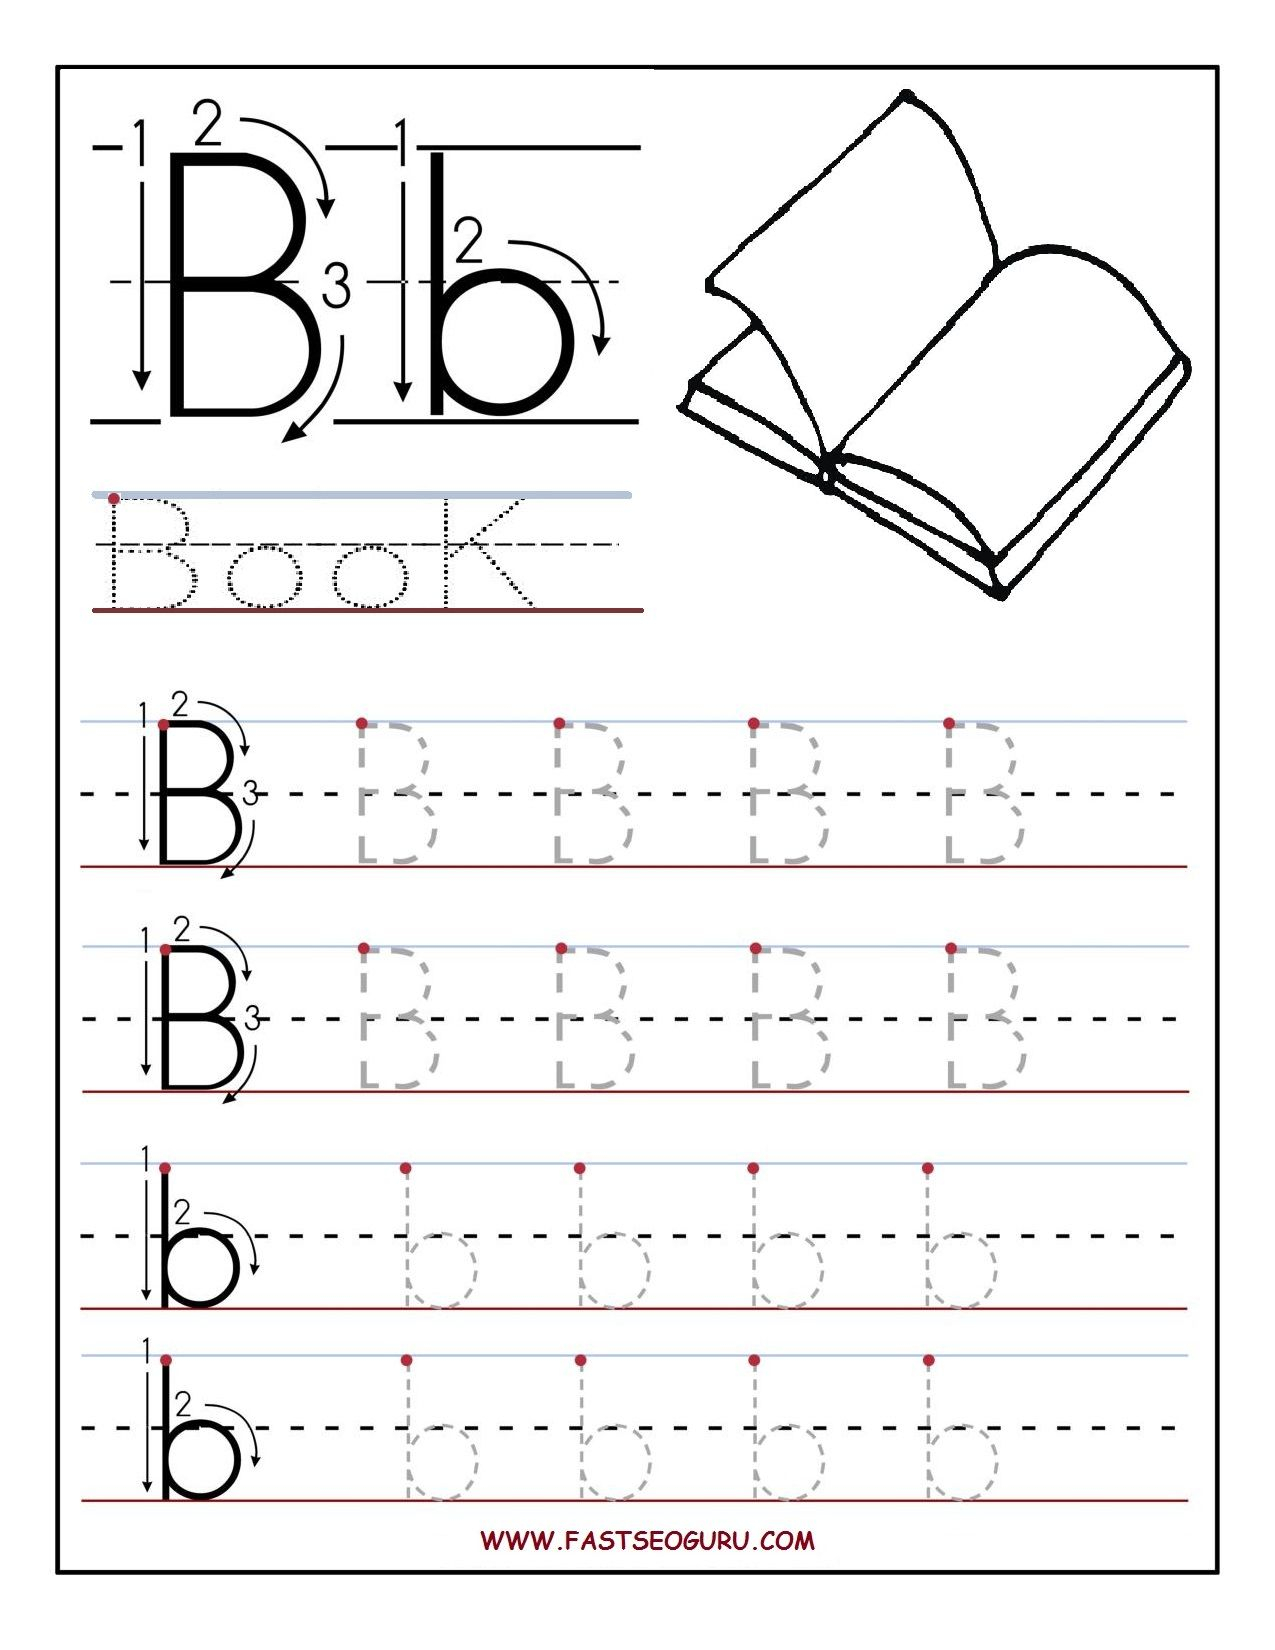 Printable Letter B Tracing Worksheets For Preschool | Letter pertaining to Letter B Worksheets For Nursery